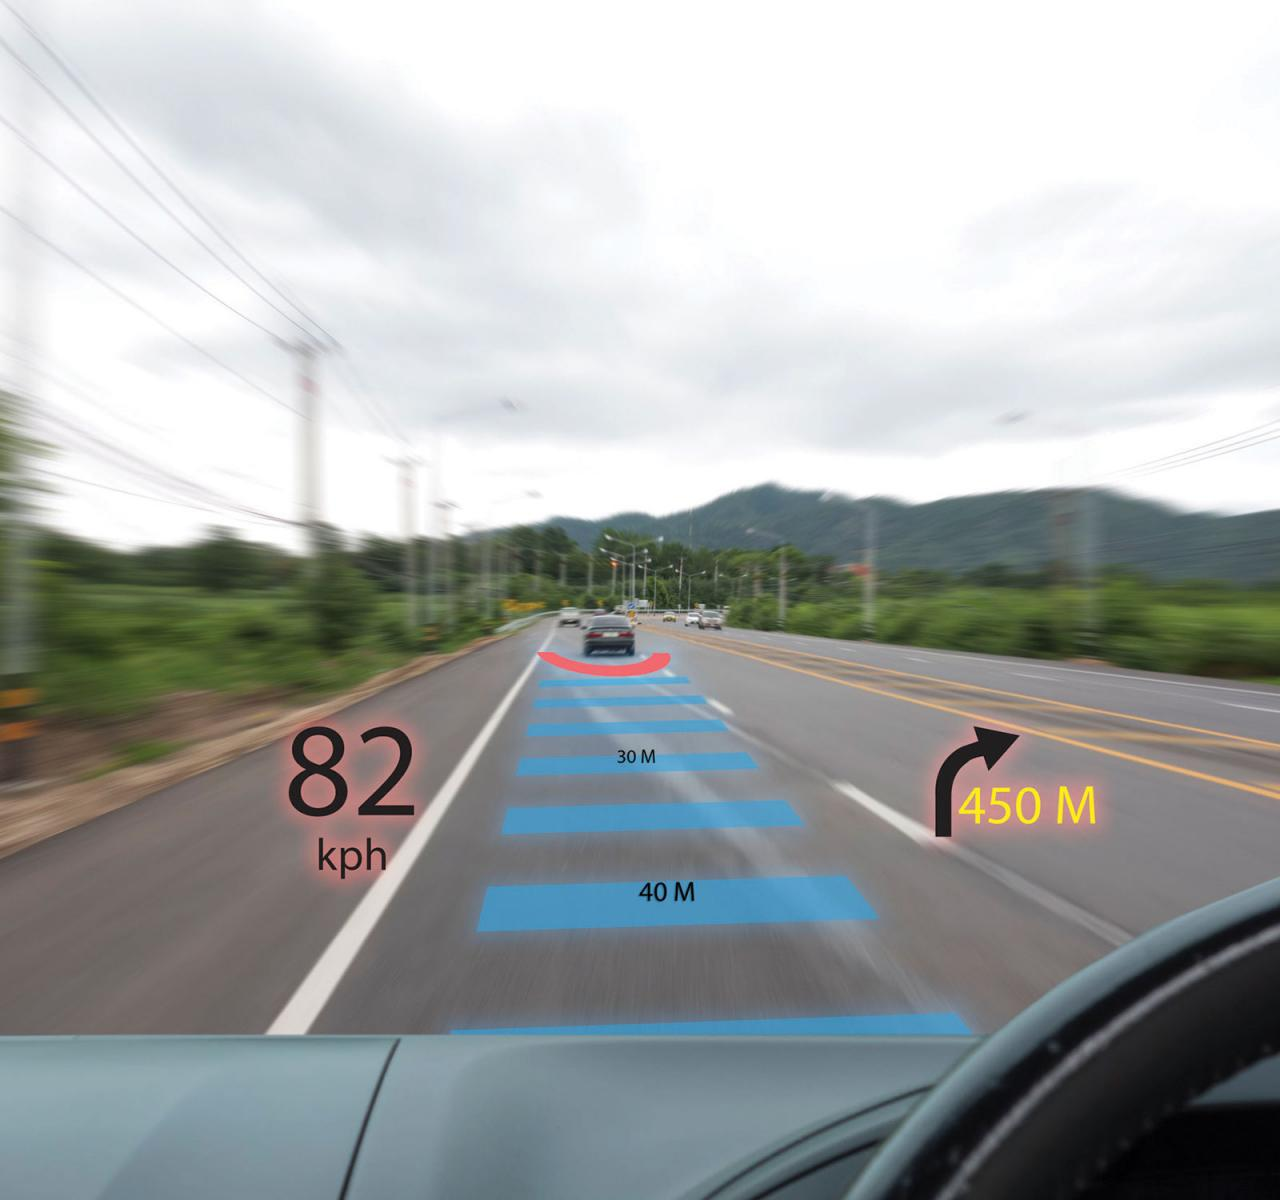 Long range forward-looking LiDAR is critical to enable deployment of autonomous vehicles